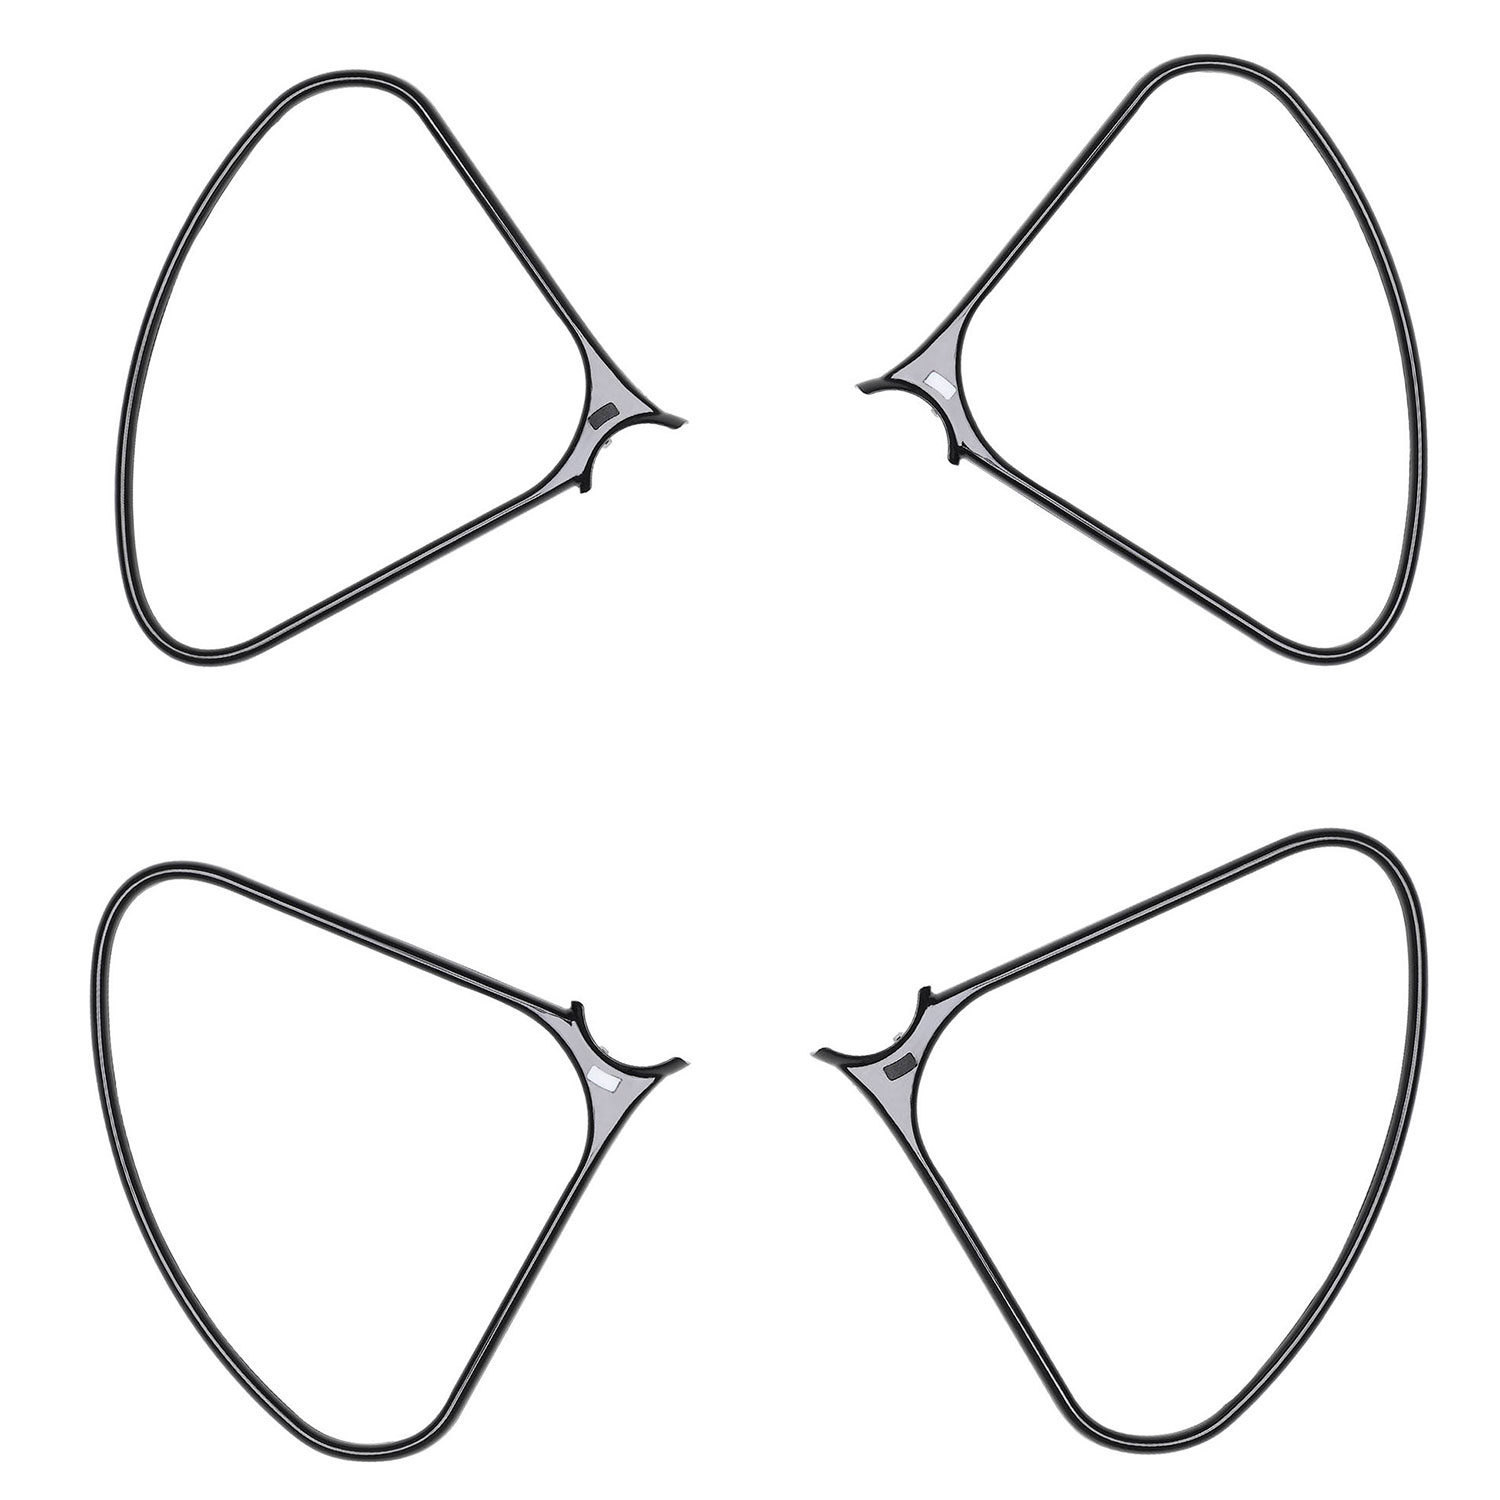 DJI Phantom 4 Propeller Guard Obsidian Edition (Part 124)